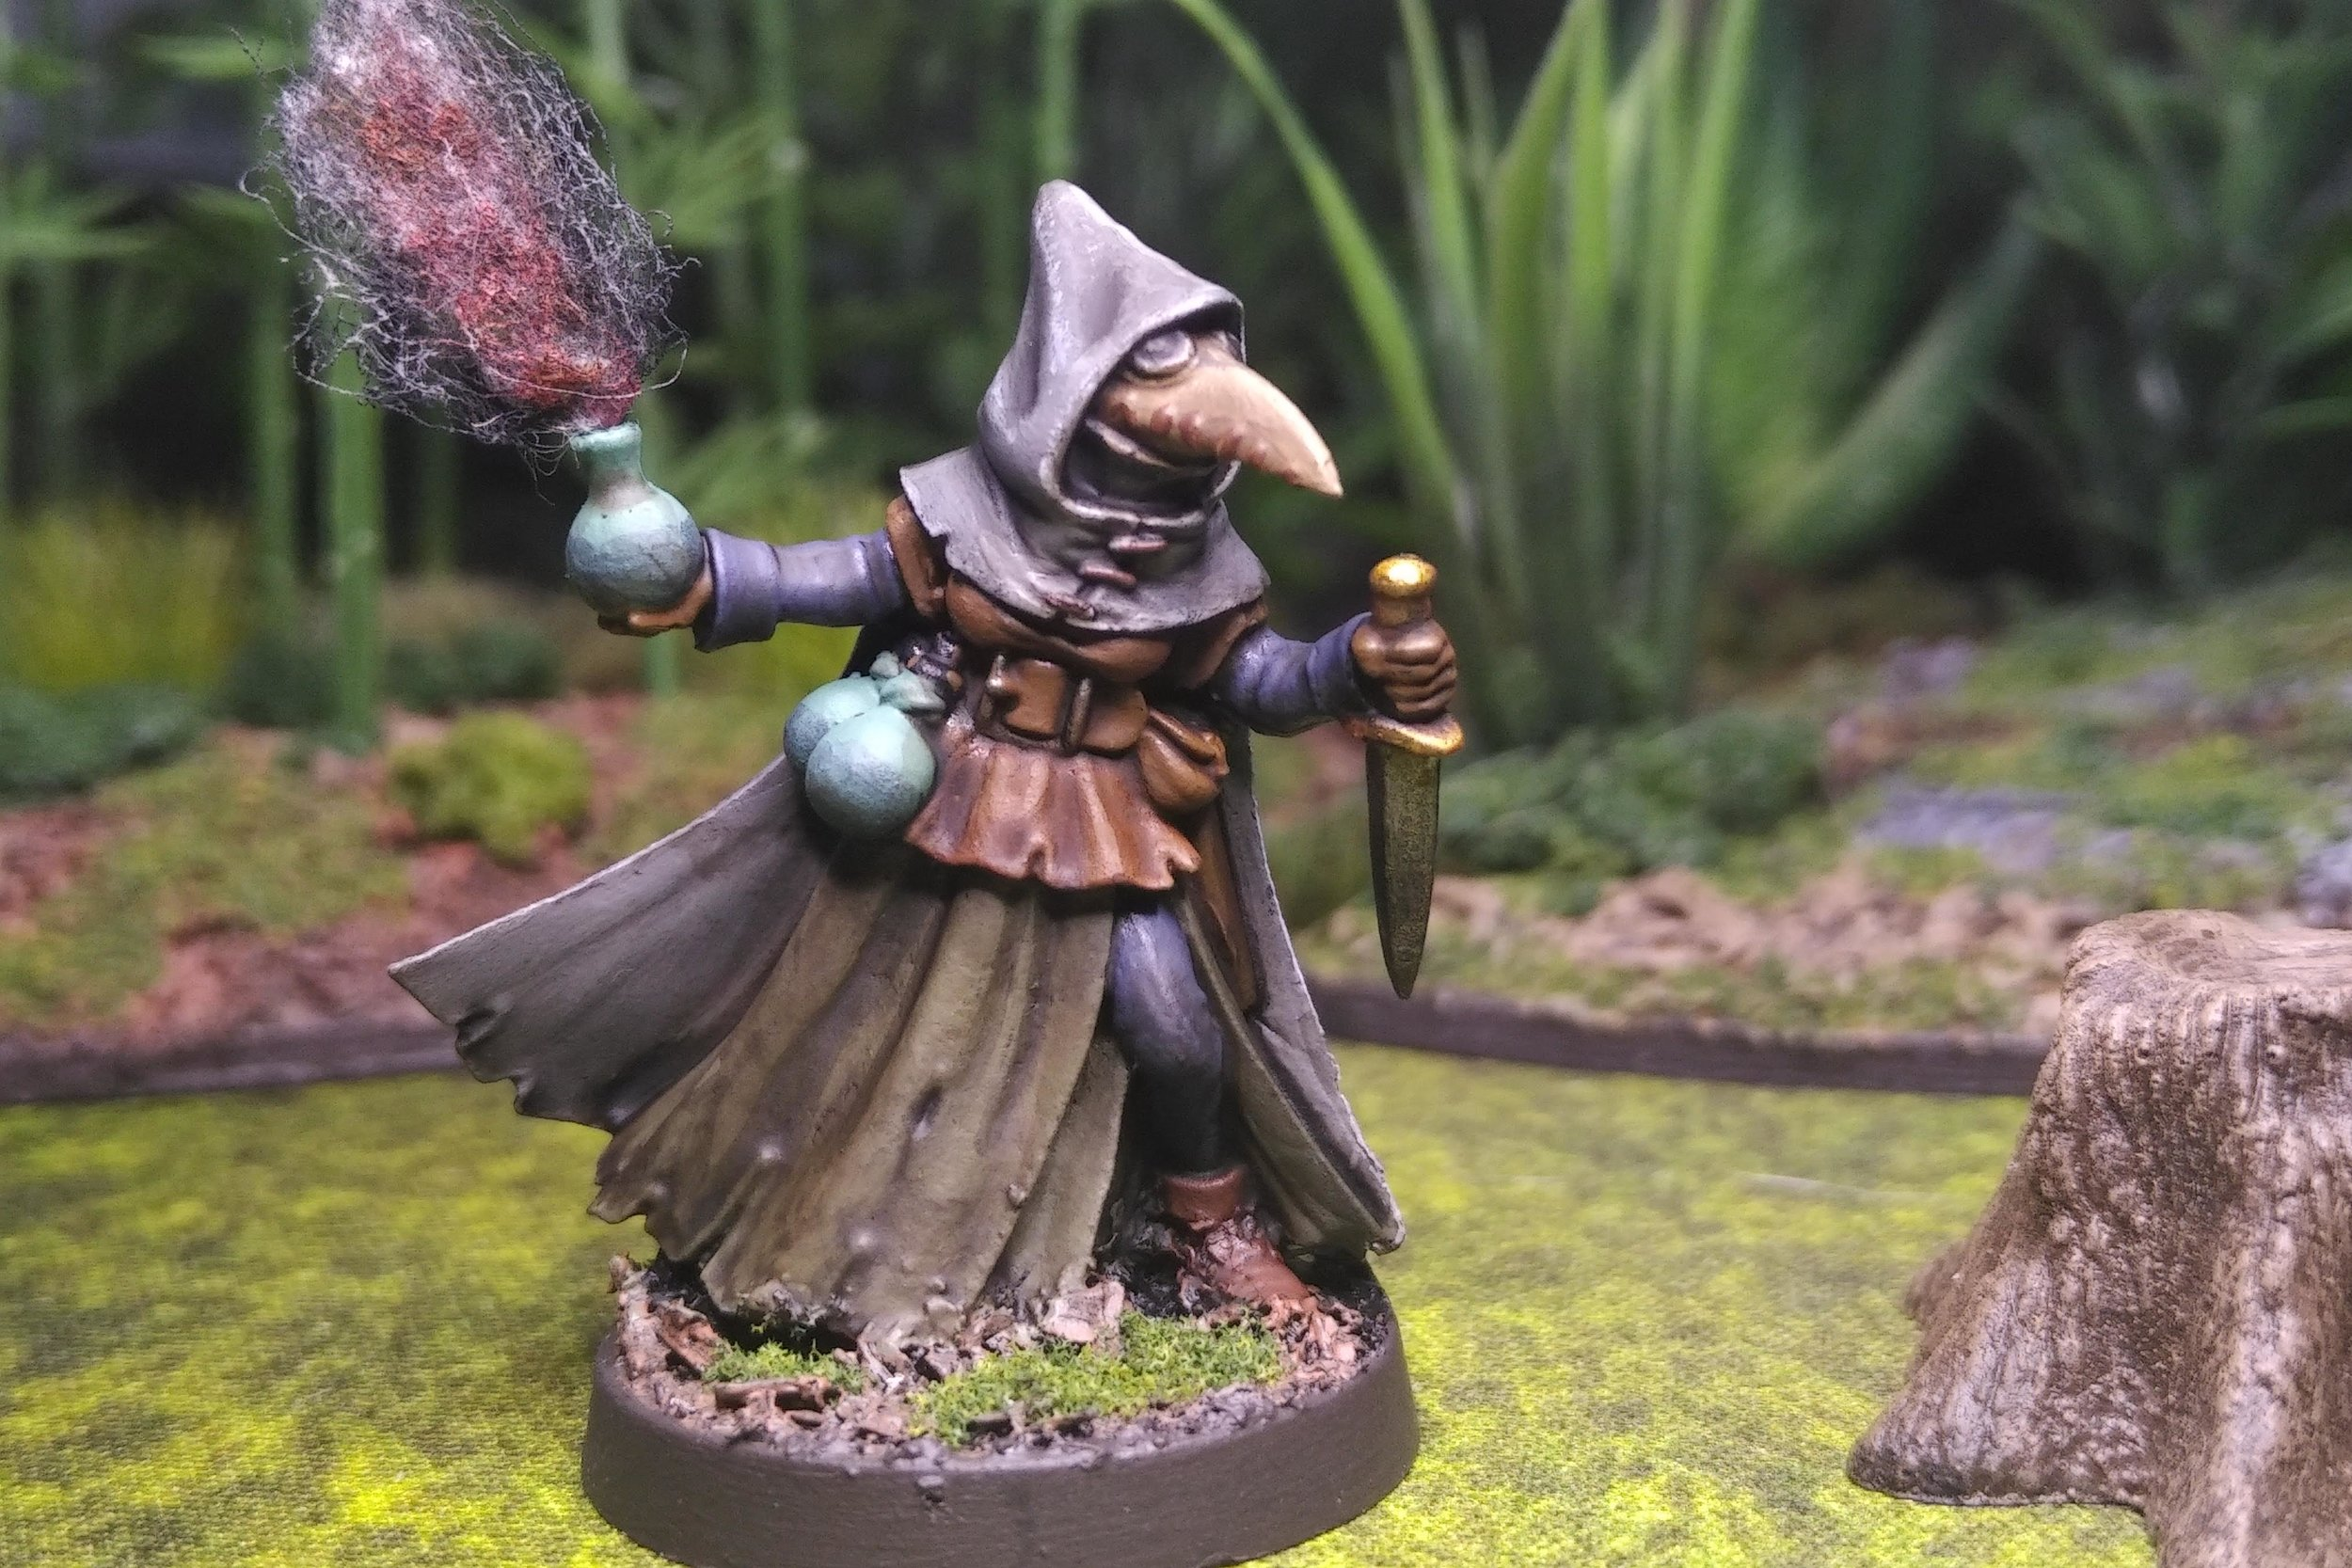 Sister Hazel, Plague Doctor - Frostgrave Wizard Apprentice  Reaper Miniatures 07017 sculpted by bobby Jackson